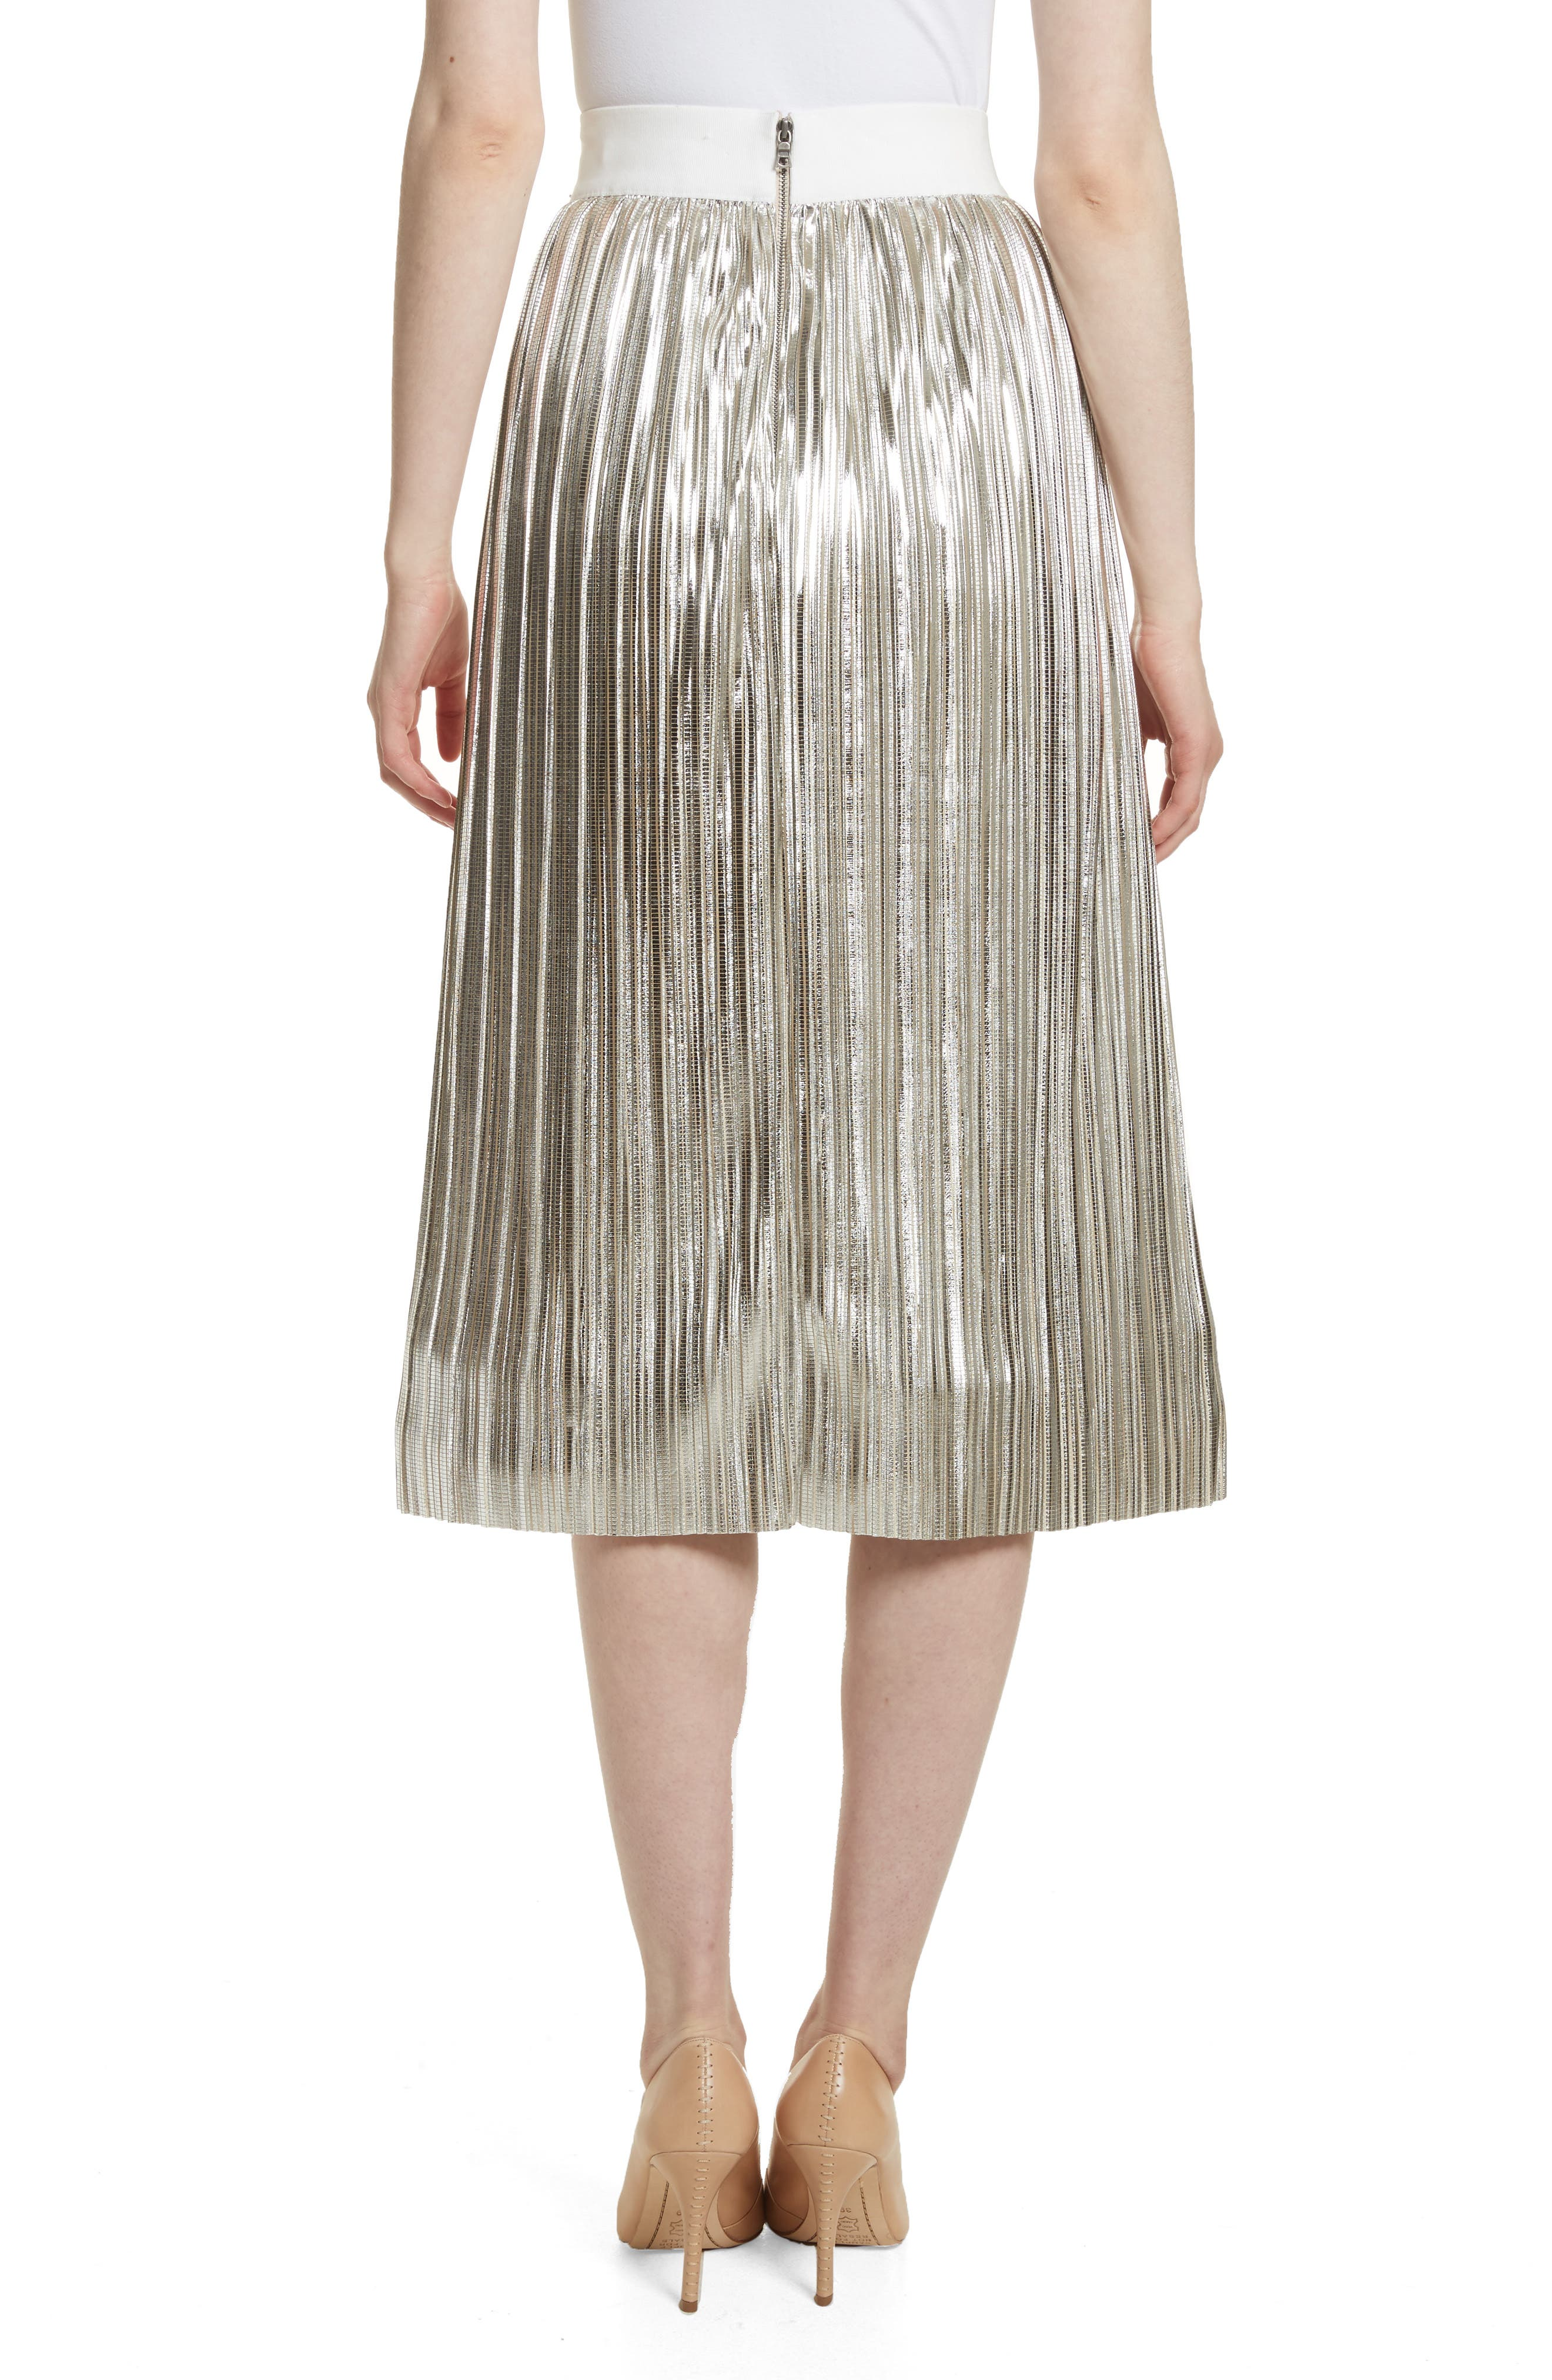 Mikaela Pleat Metallic Skirt,                             Alternate thumbnail 2, color,                             Silver Metallic